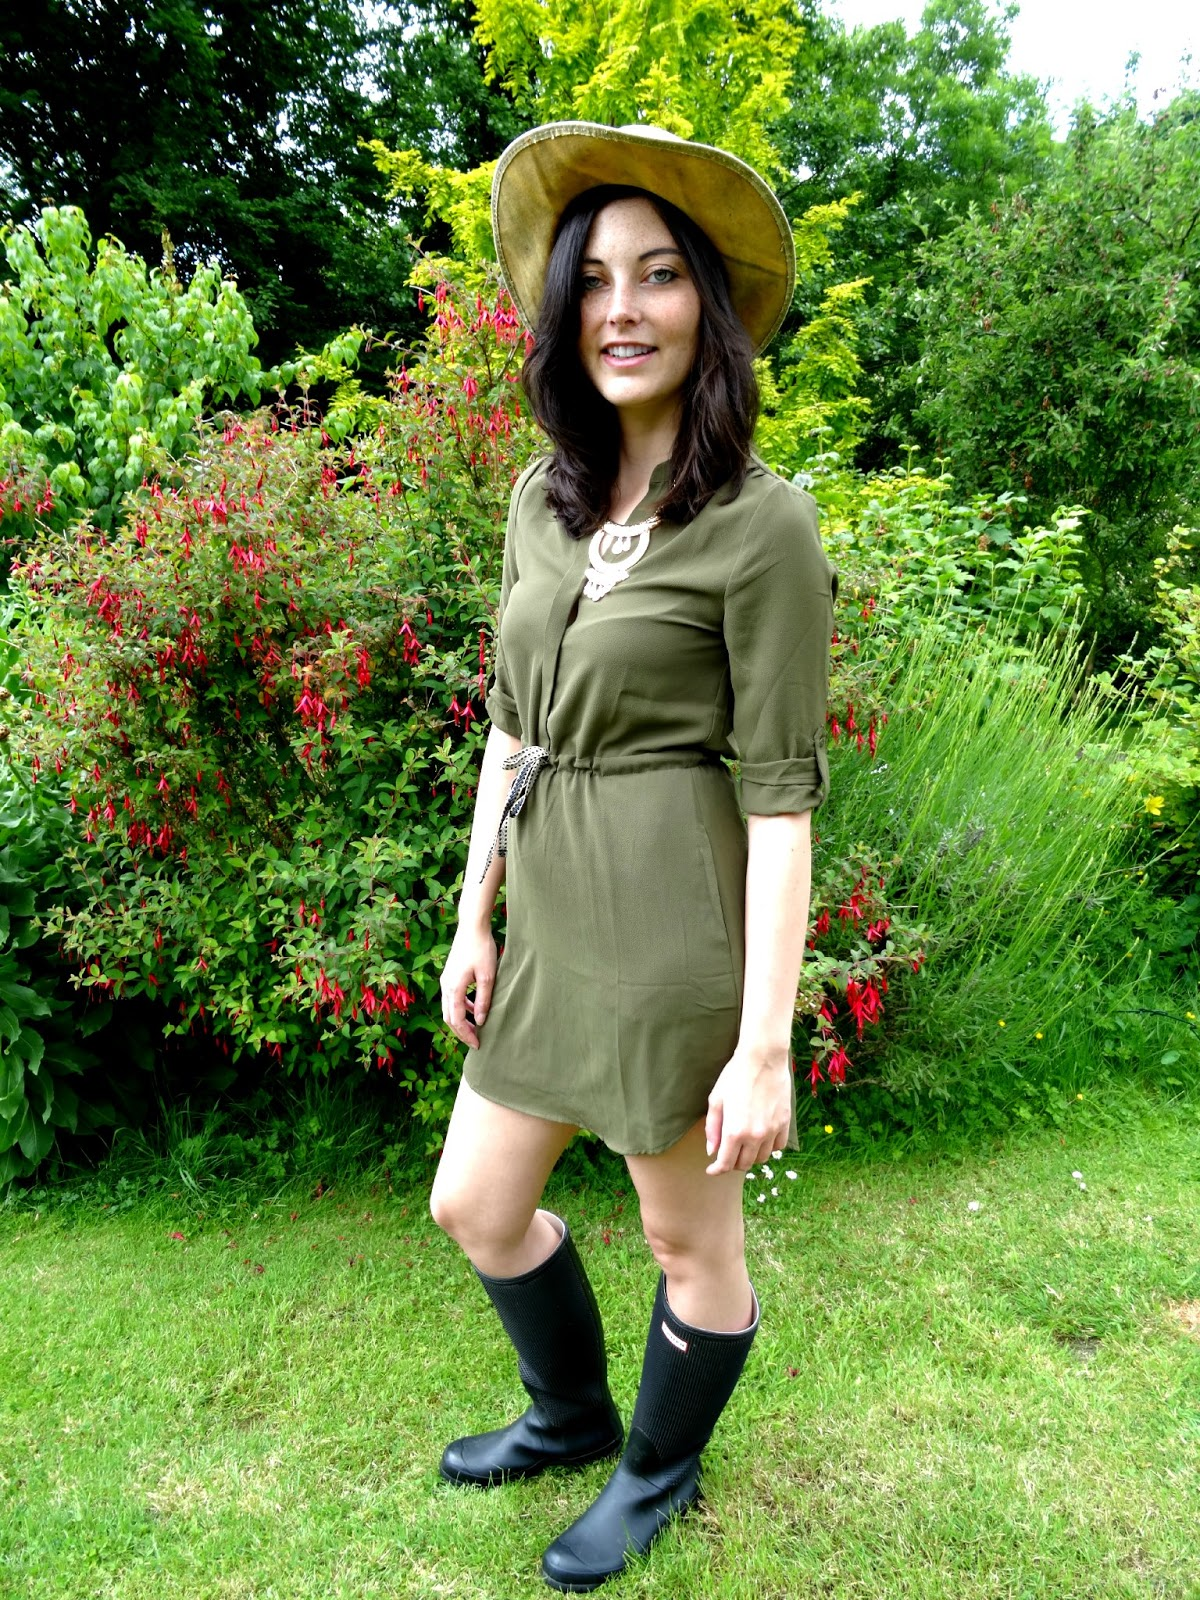 Glastonbury festival fashion post